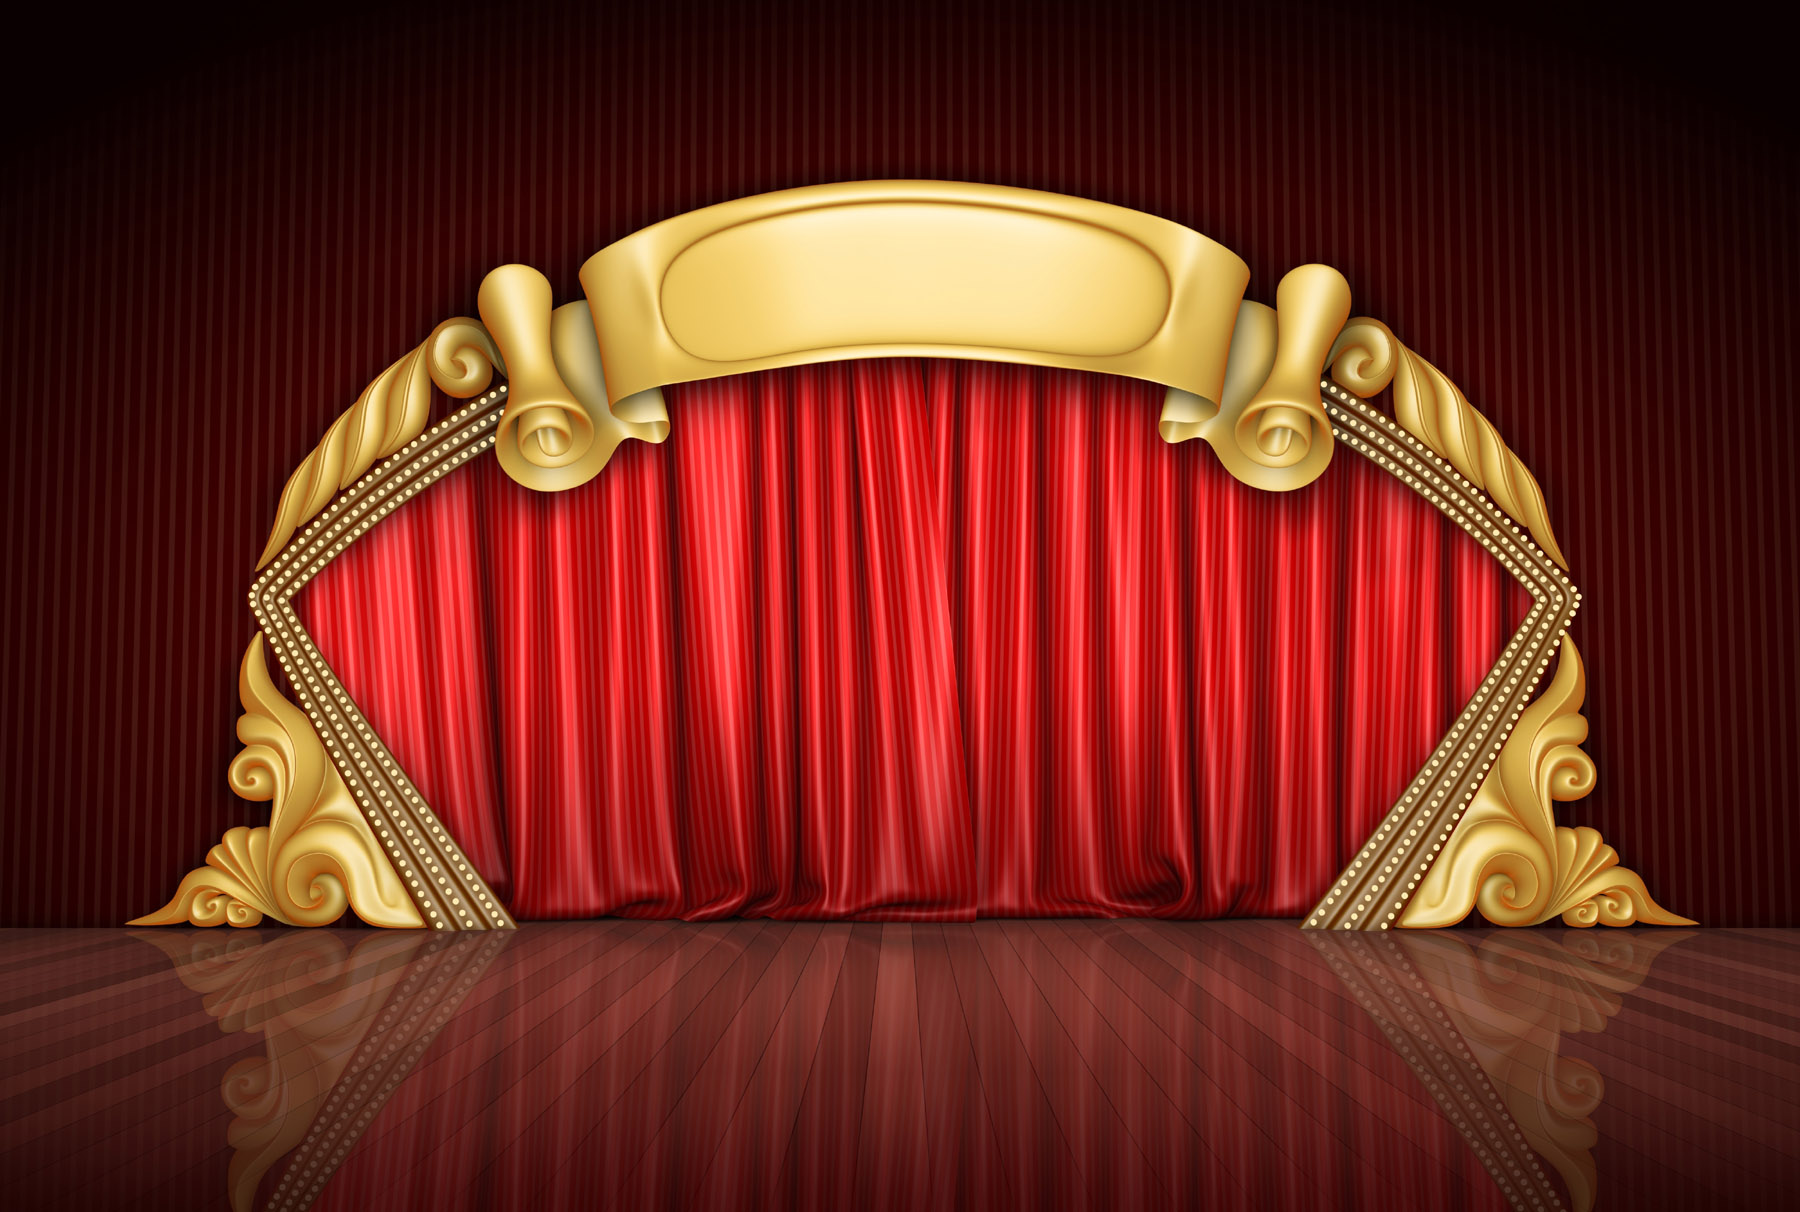 Red curtain and stage material 27572